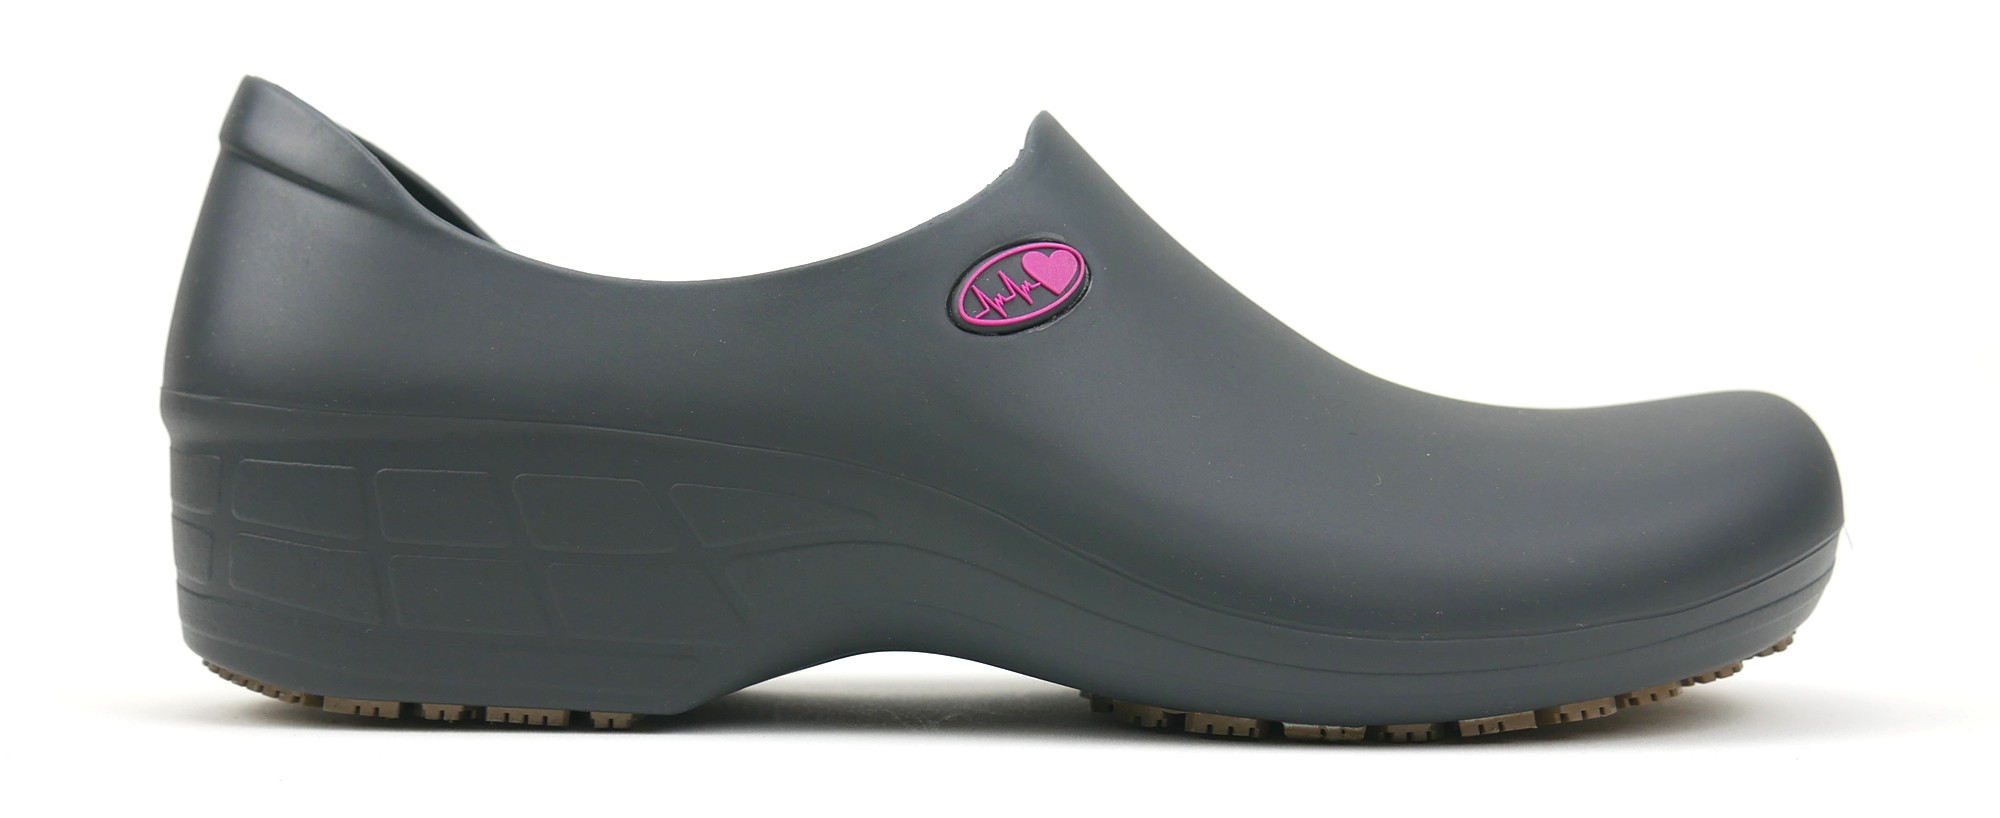 Non-Slip STICKY Shoes Electro Heart - Gray/Pink